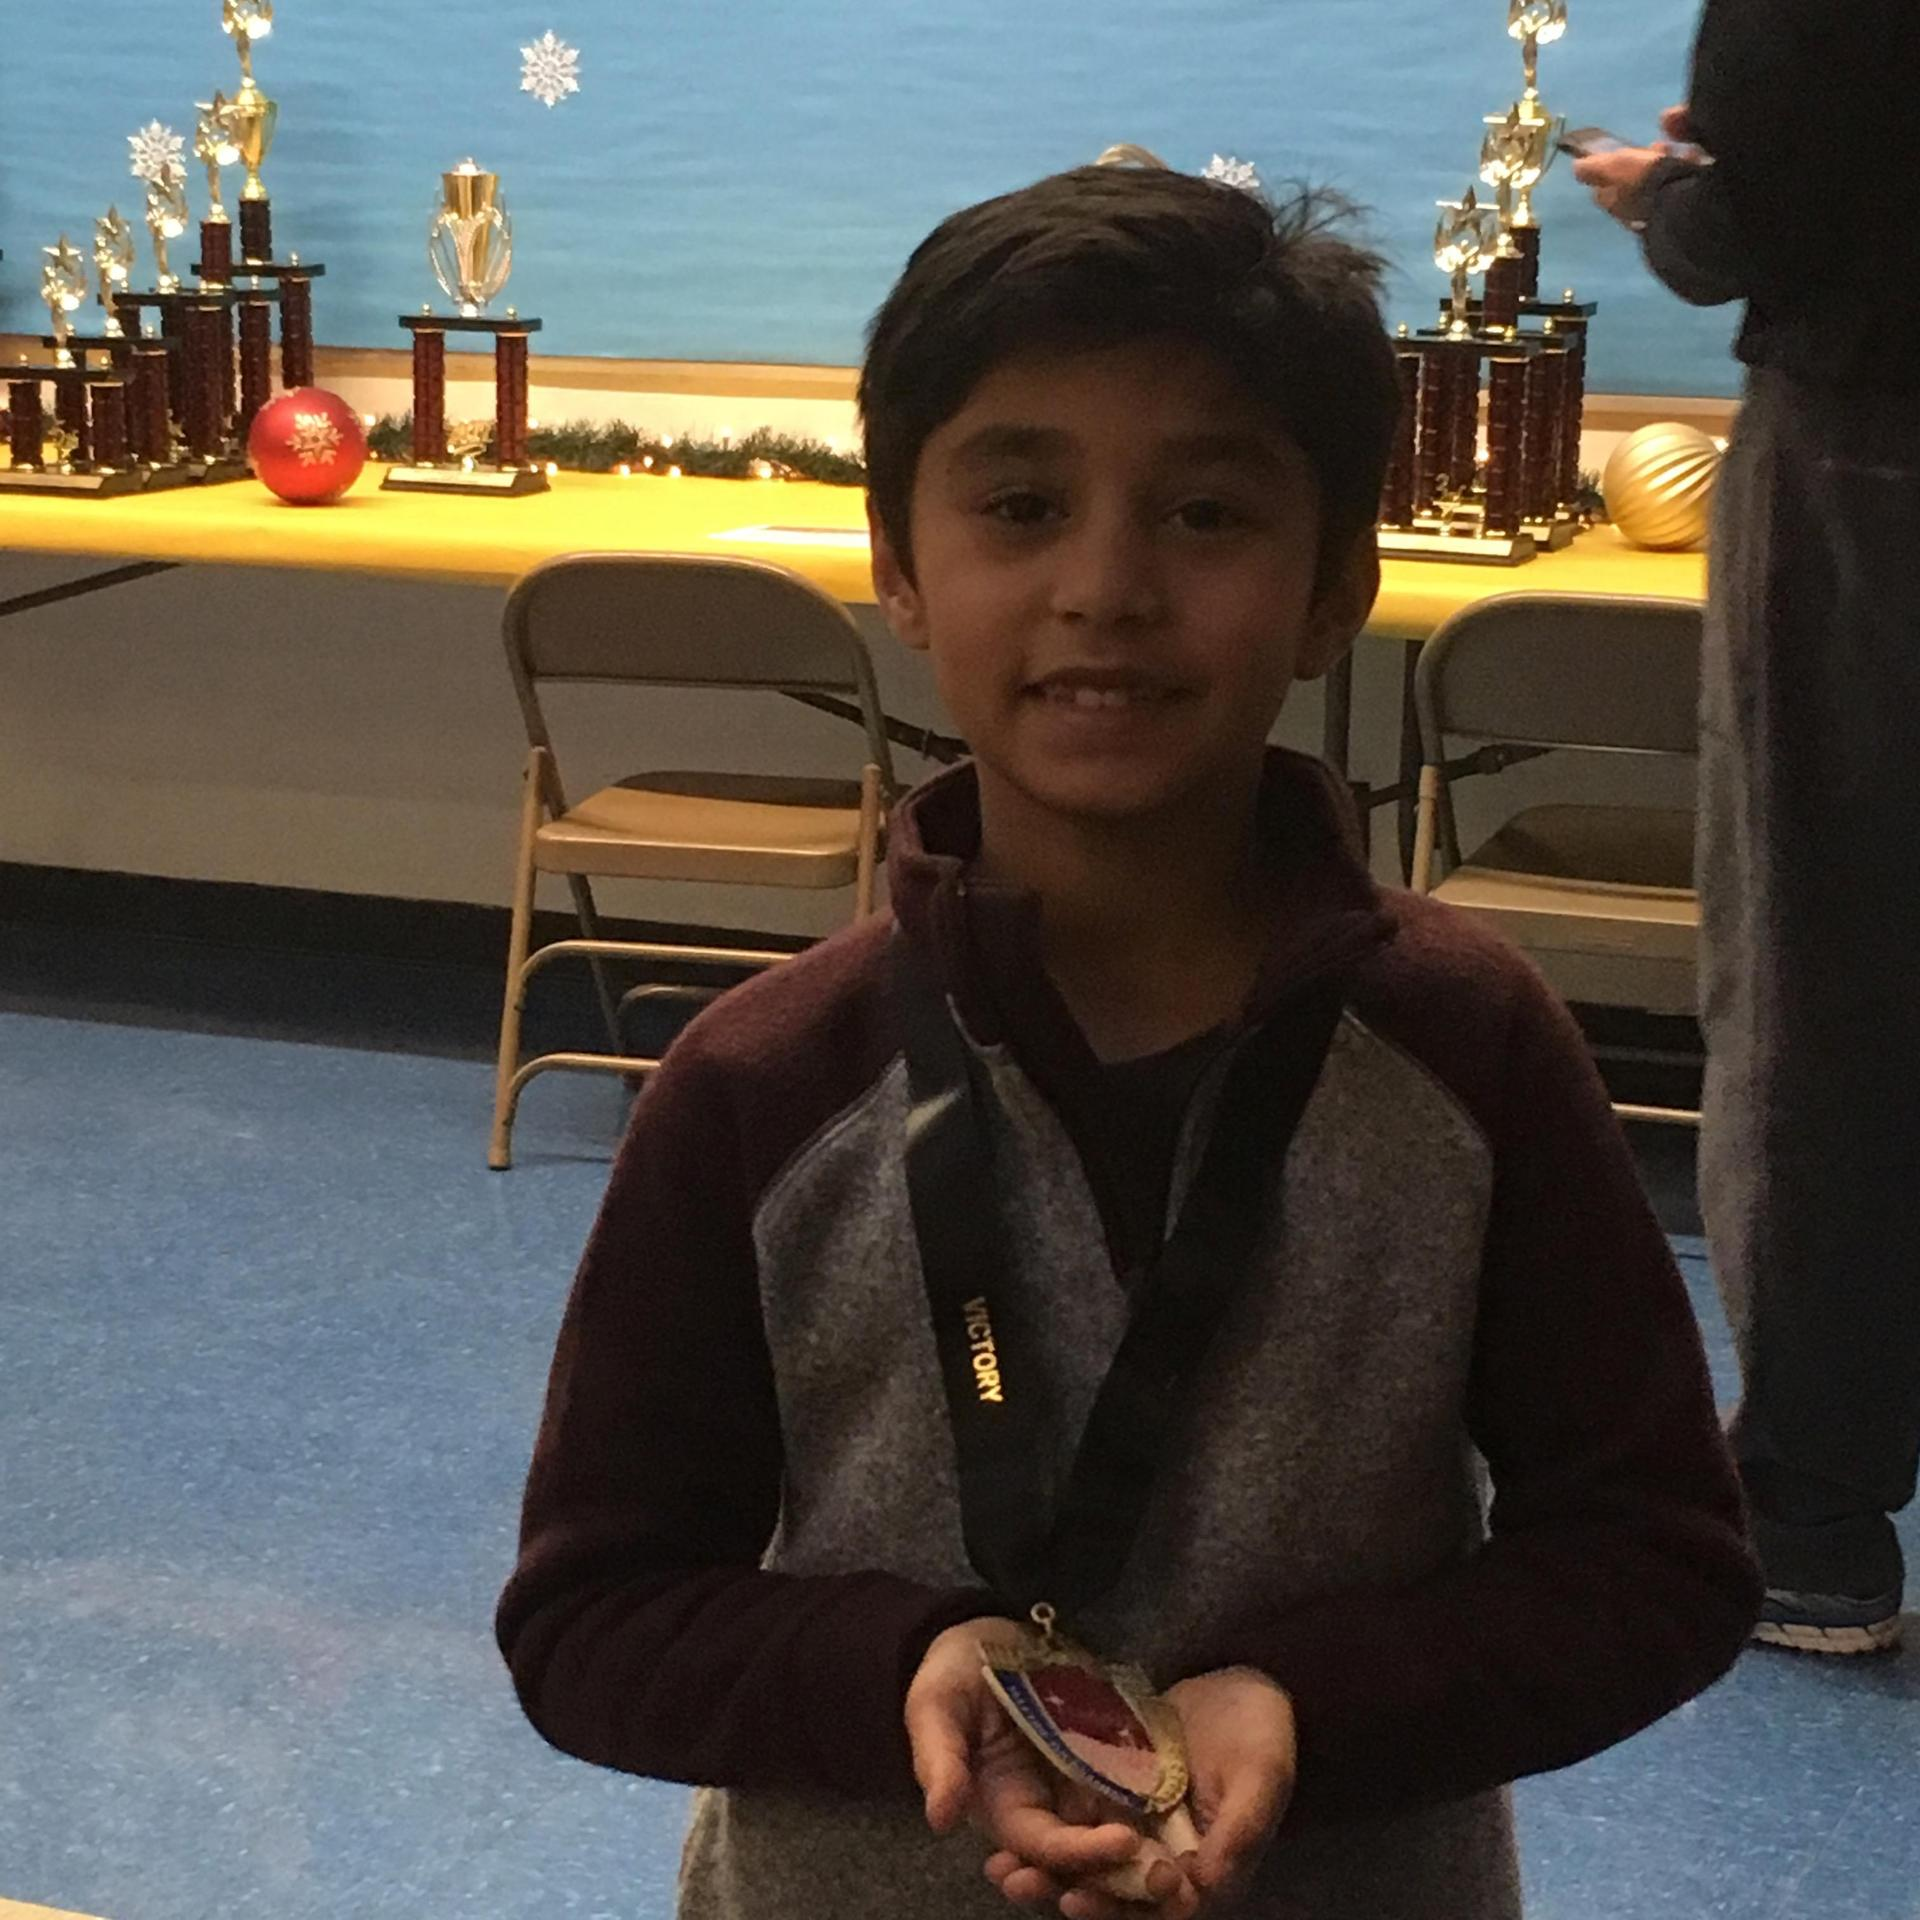 kid smiling with chess medal